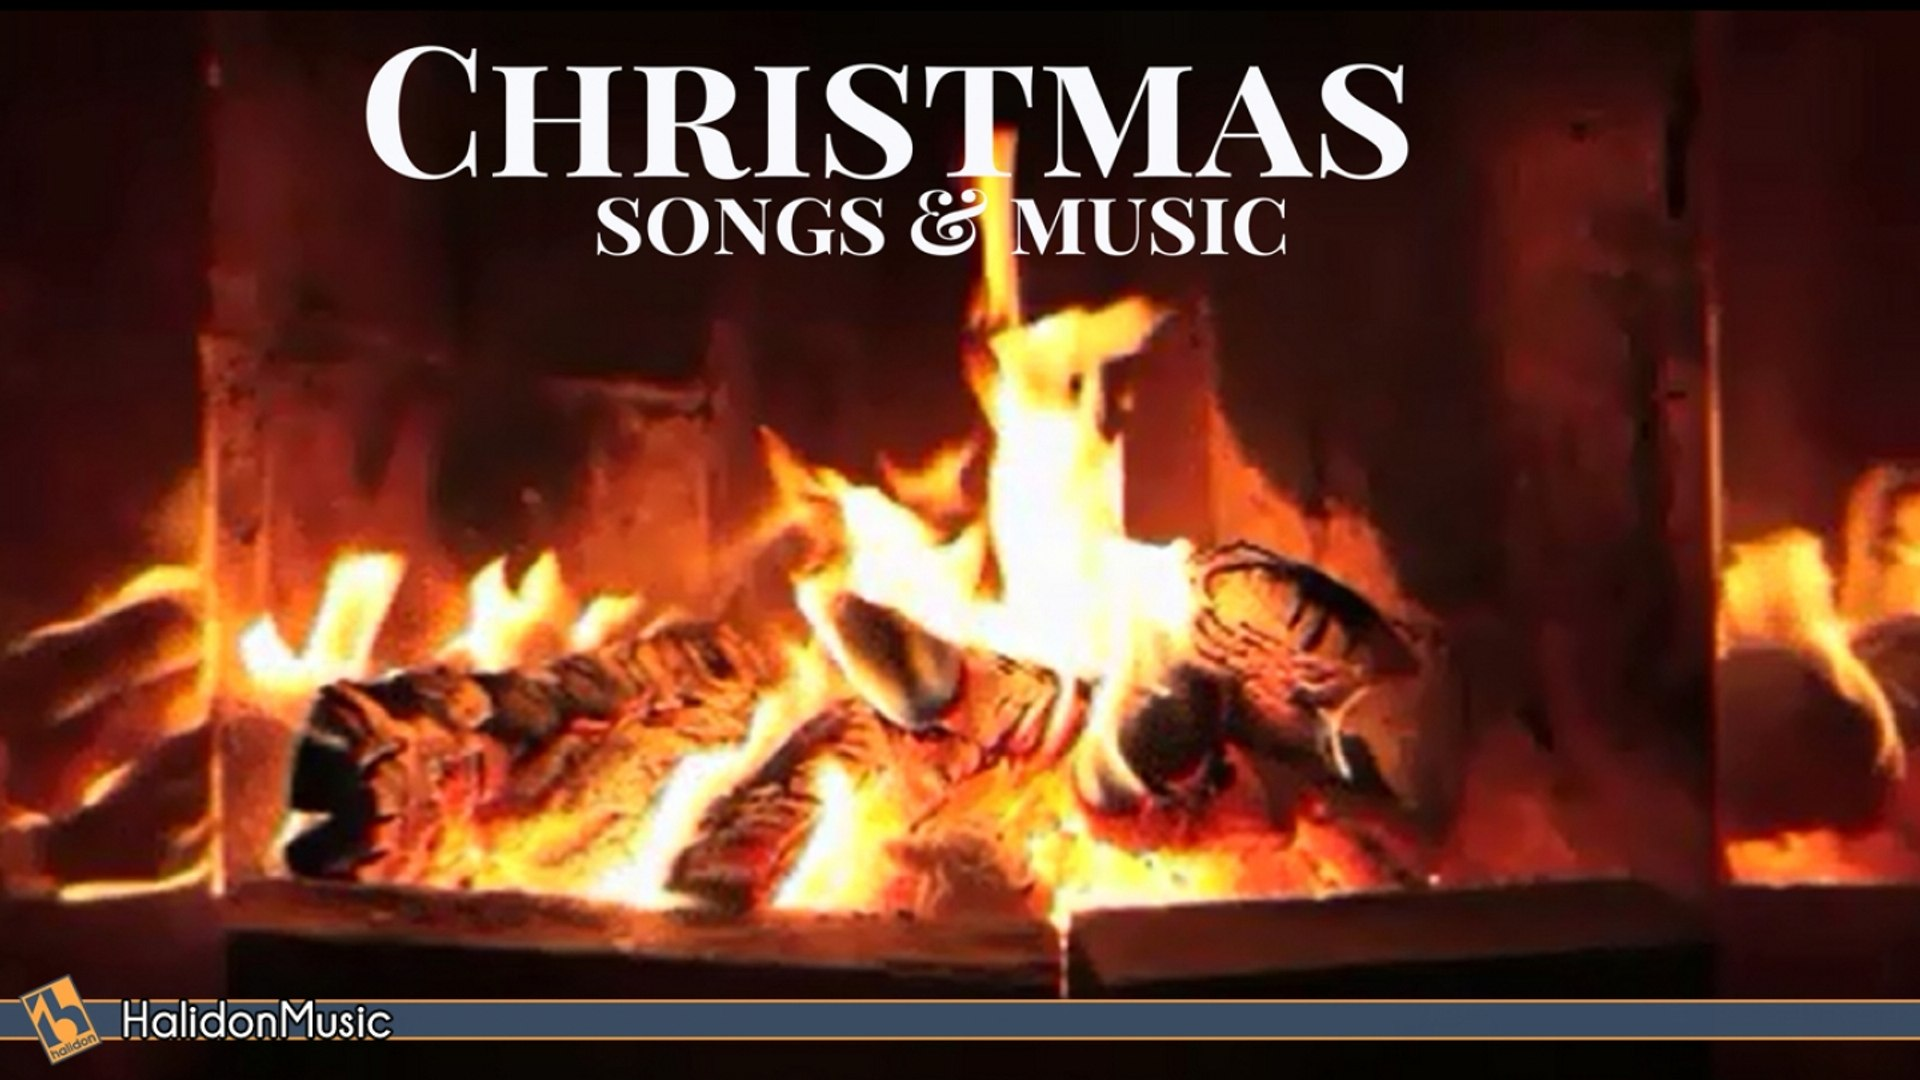 Fireplace With Christmas Music.Aa Vv The Best Christmas Songs Carols Instrumental And Classical Music Relaxing Fireplace